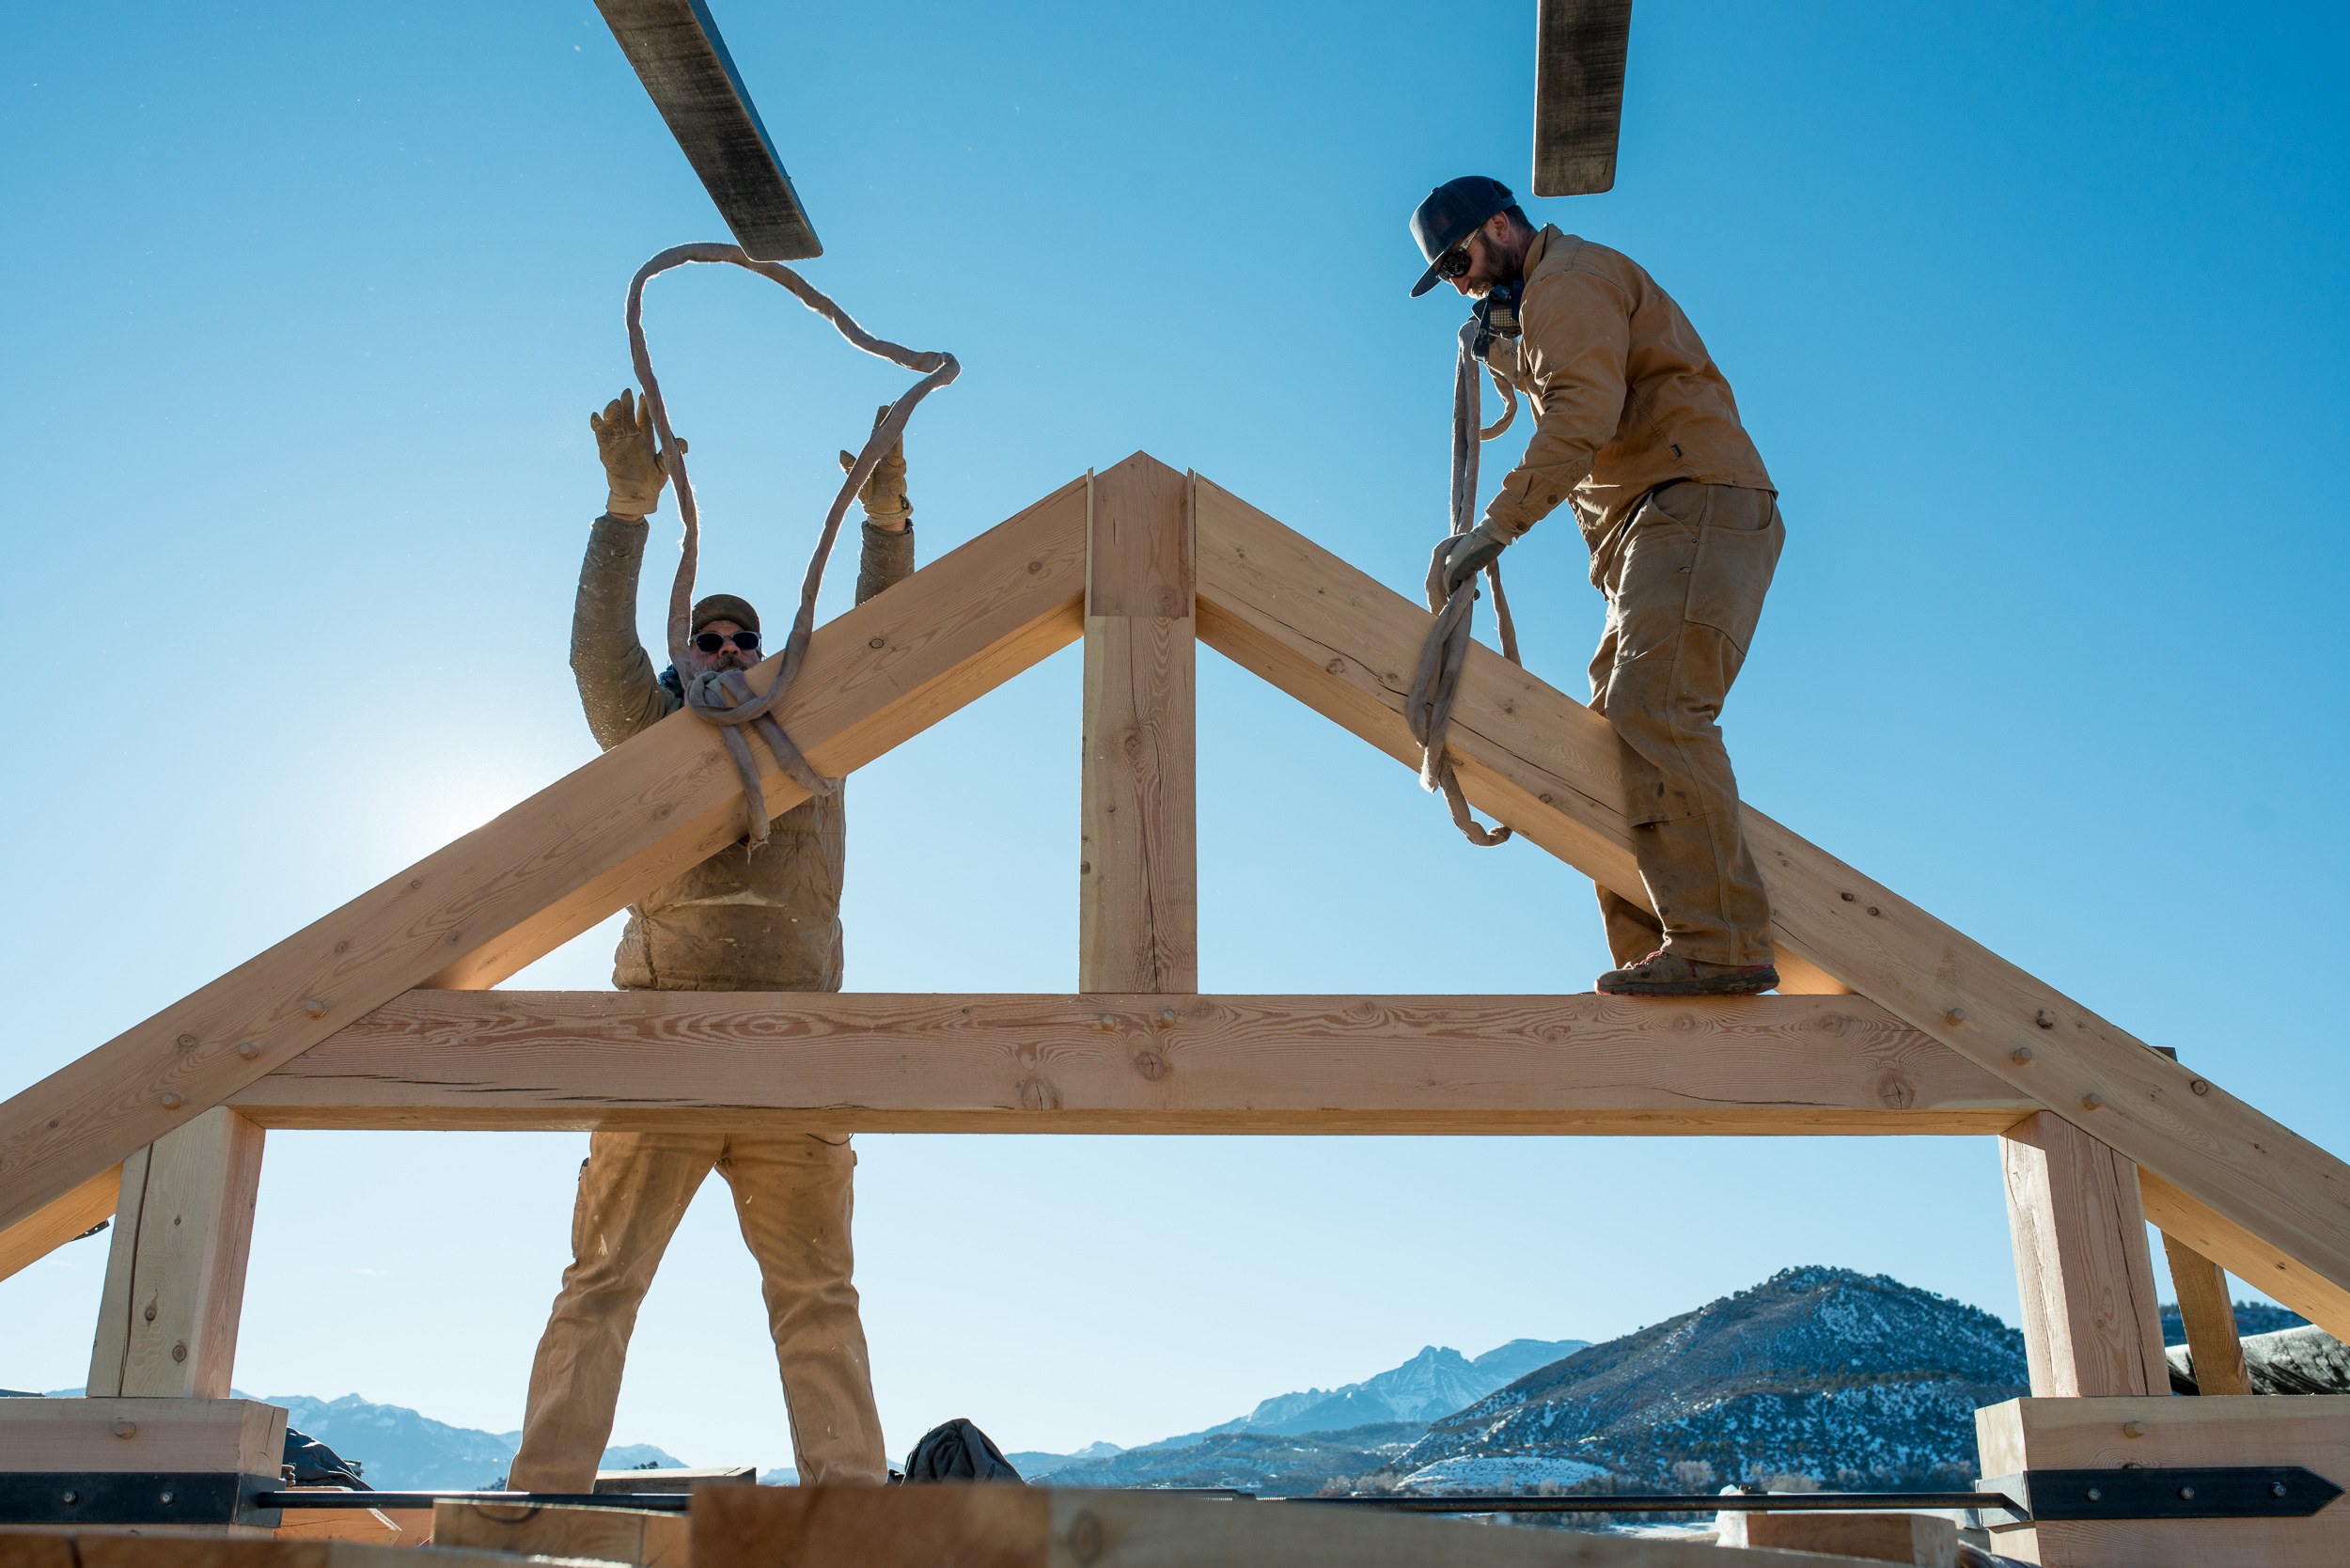 Phil and Bodie harness up a completed truss for relocation to staging